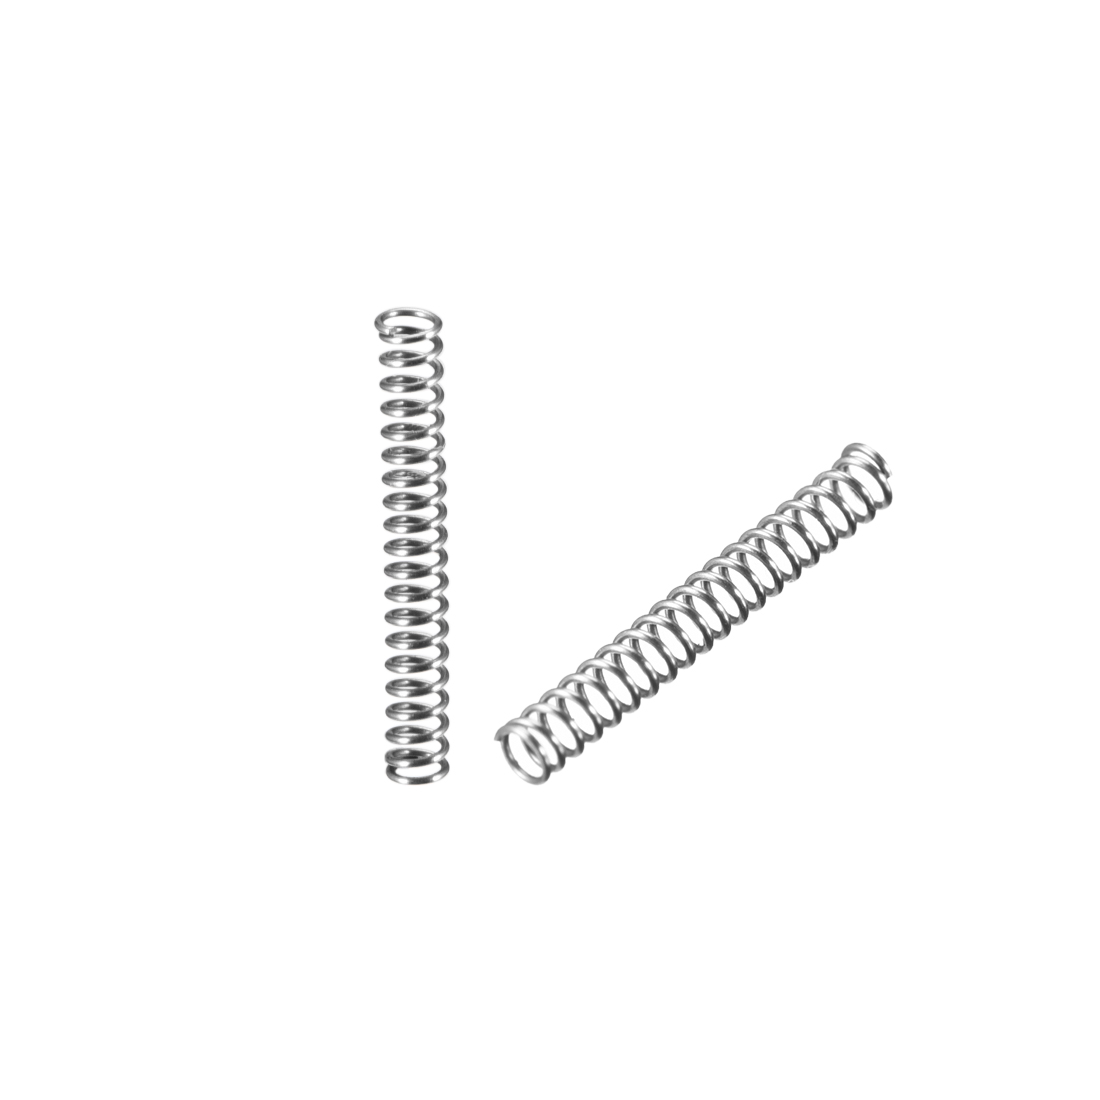 0.3x2x15mm Stainless Steel Coil Extended Compressed Spring 20Pcs - image 3 of 3